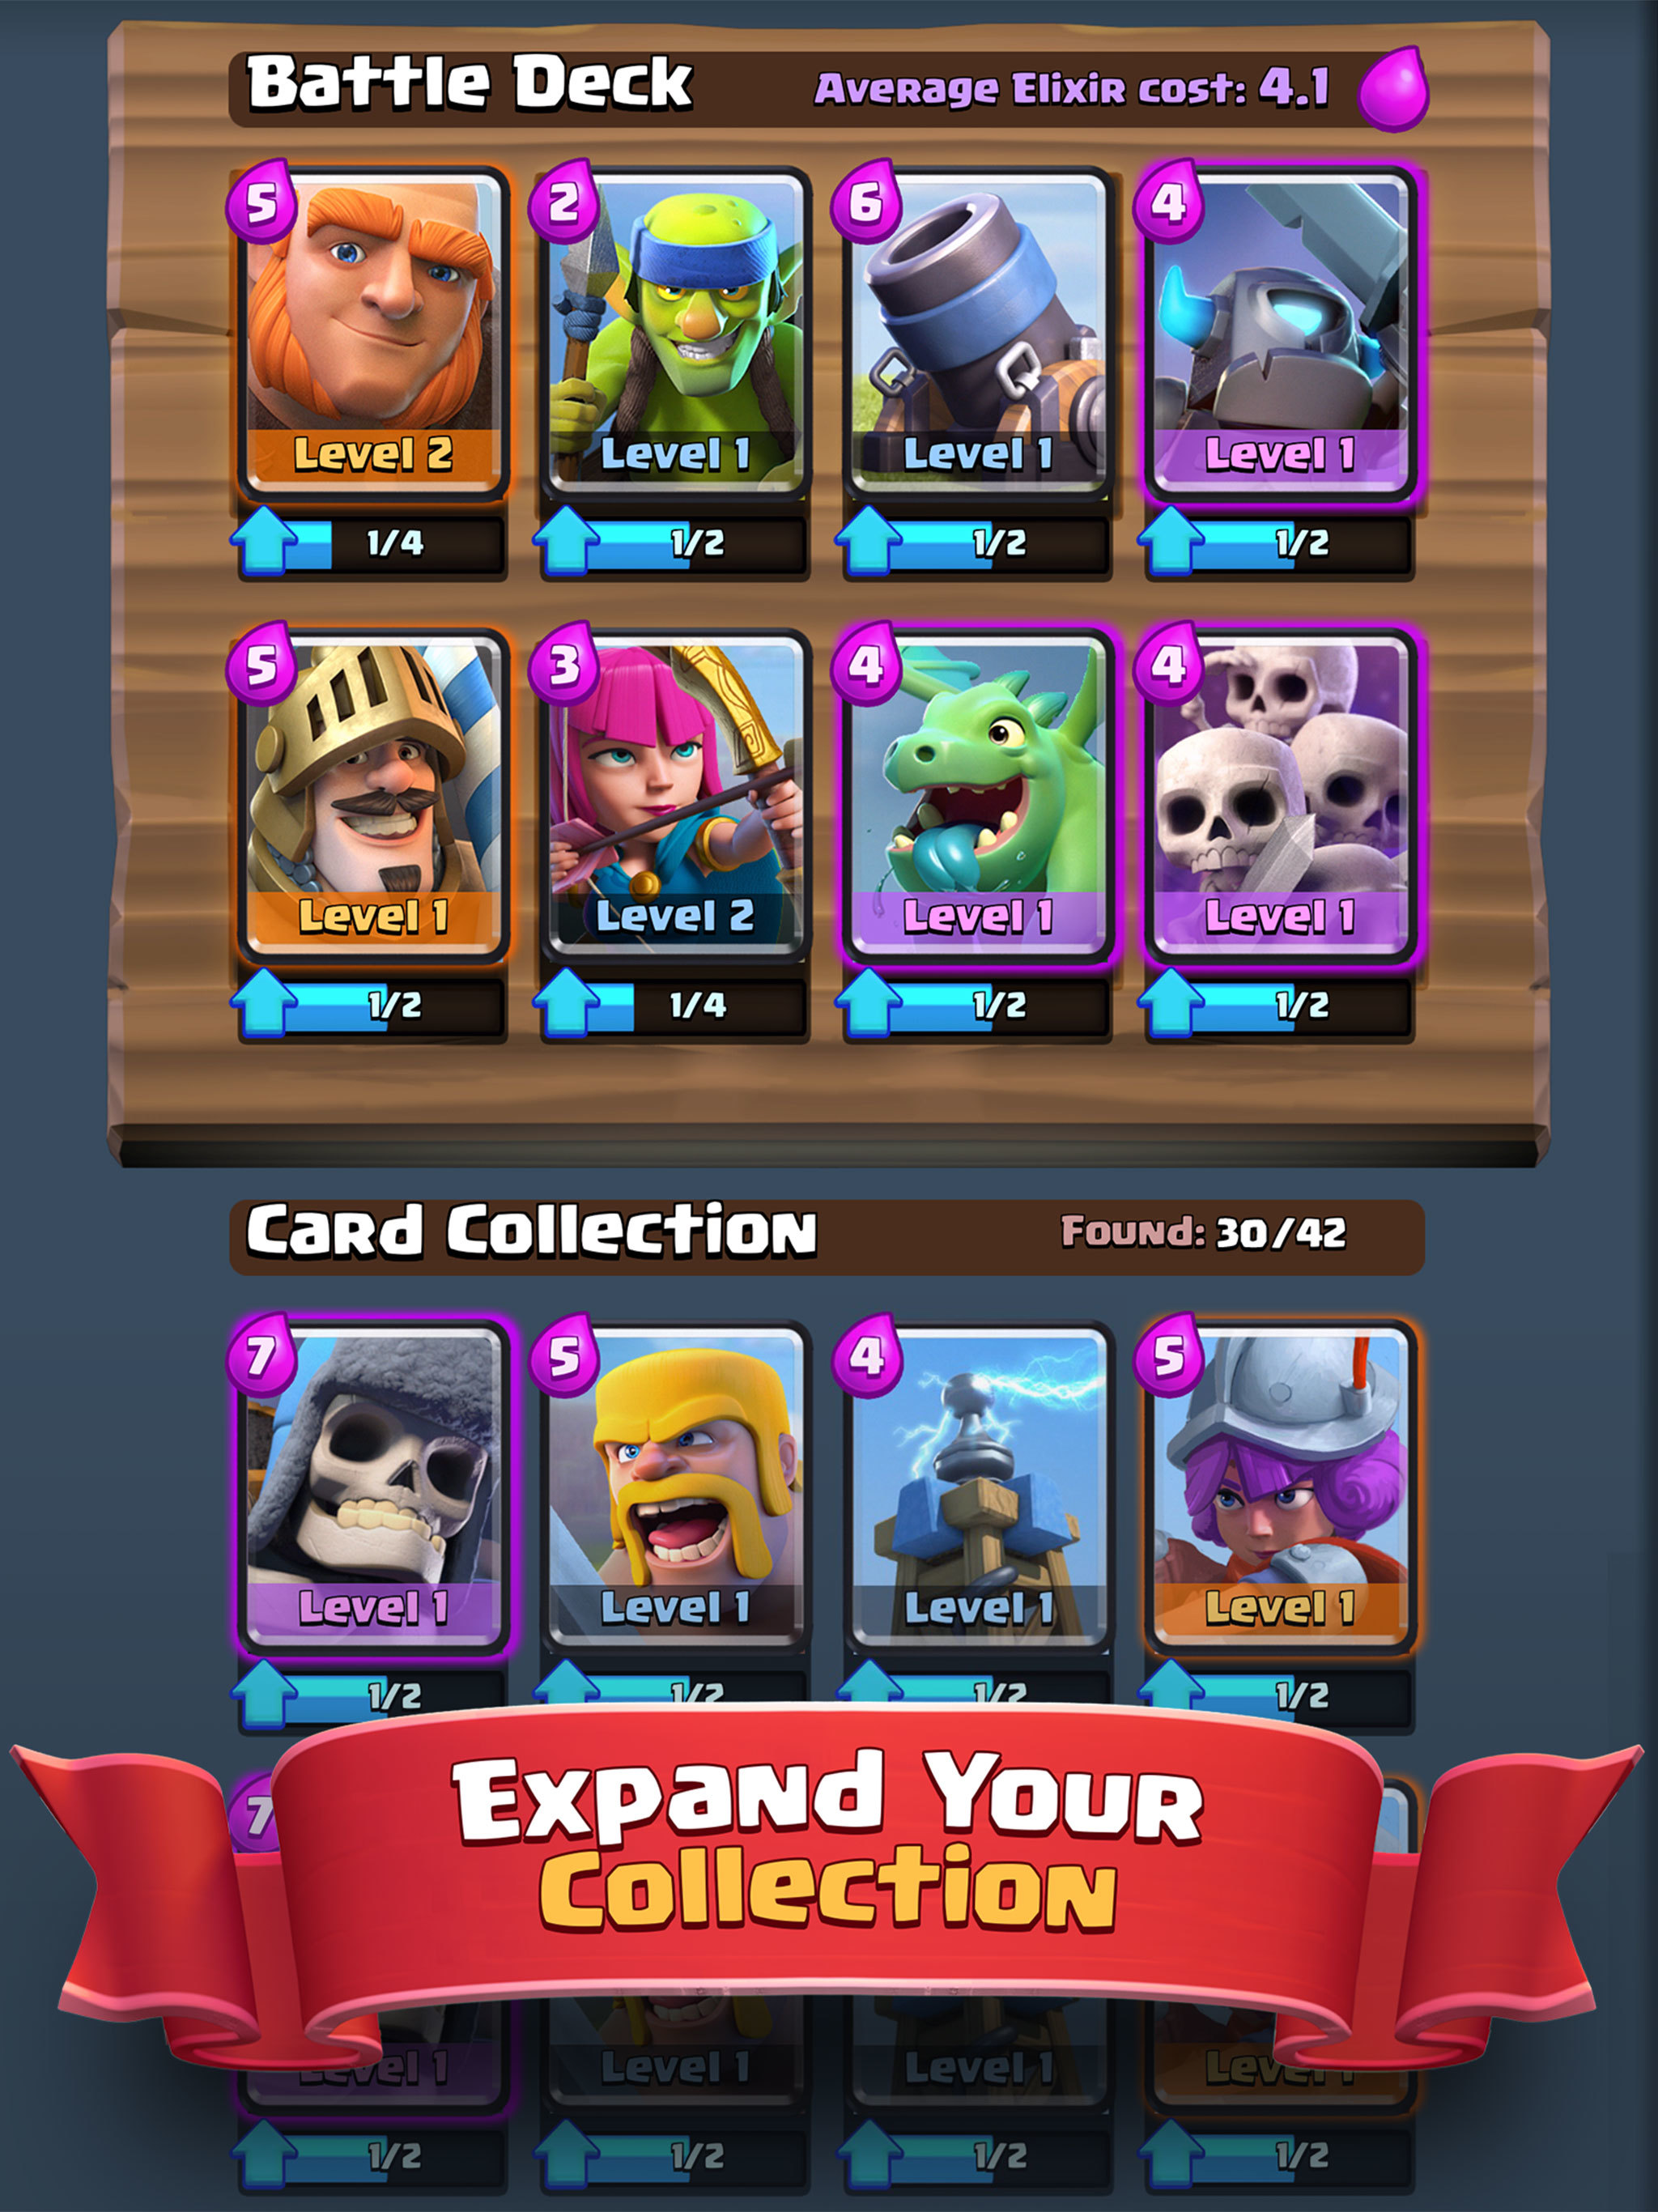 Clash Royale: The Latest Clash of Clans Game! | Clash for Dummies